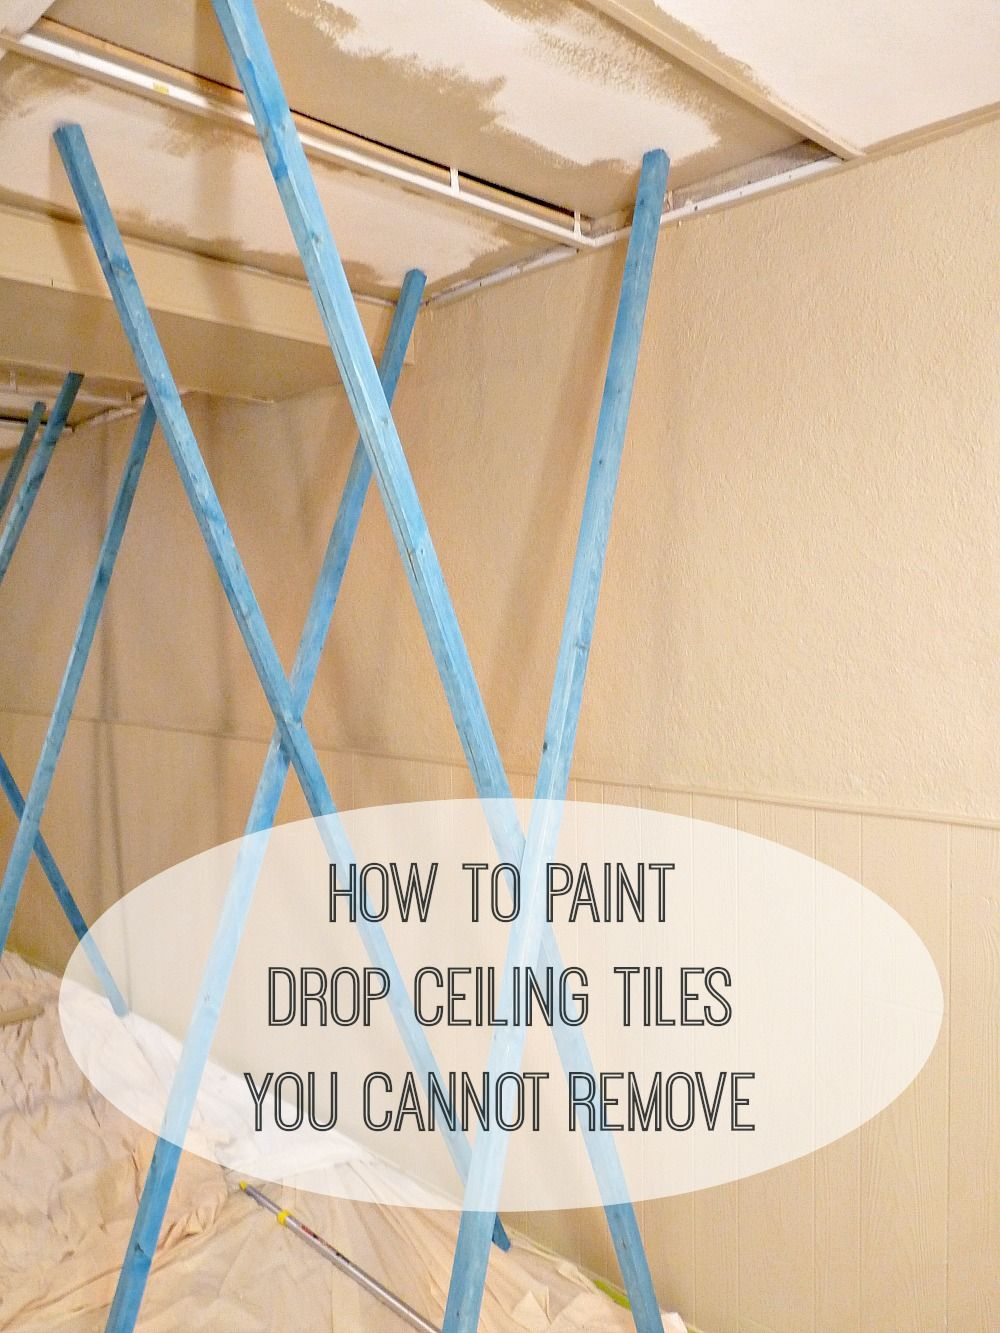 Basement update how to paint drop ceilings you cannot remove basement update how to paint drop ceilings you cannot remove dans le lakehouse dailygadgetfo Images